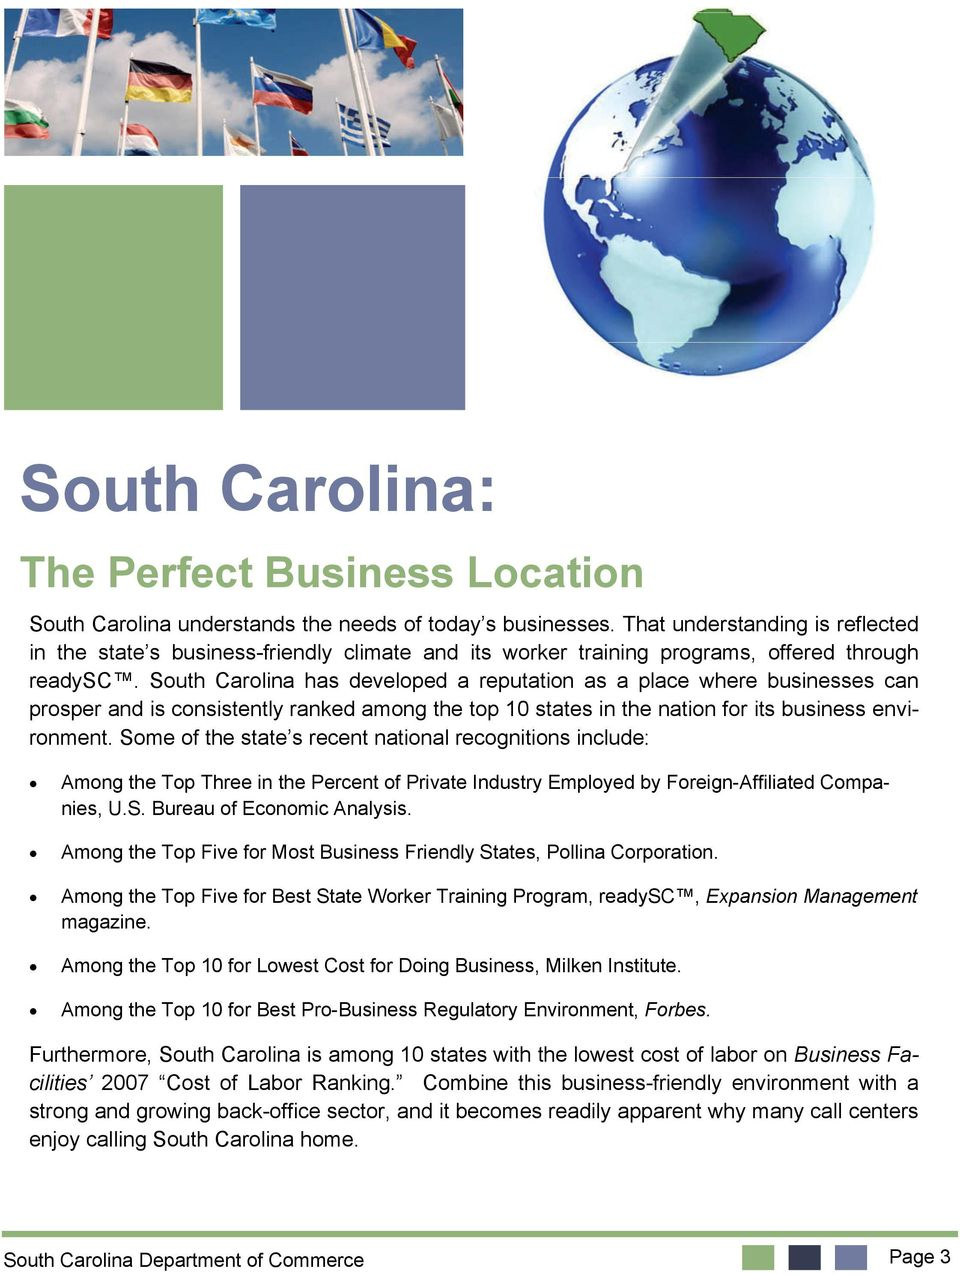 South Carolina has developed a reputation as a place where businesses can prosper and is consistently ranked among the top 10 states in the nation for its business environment.